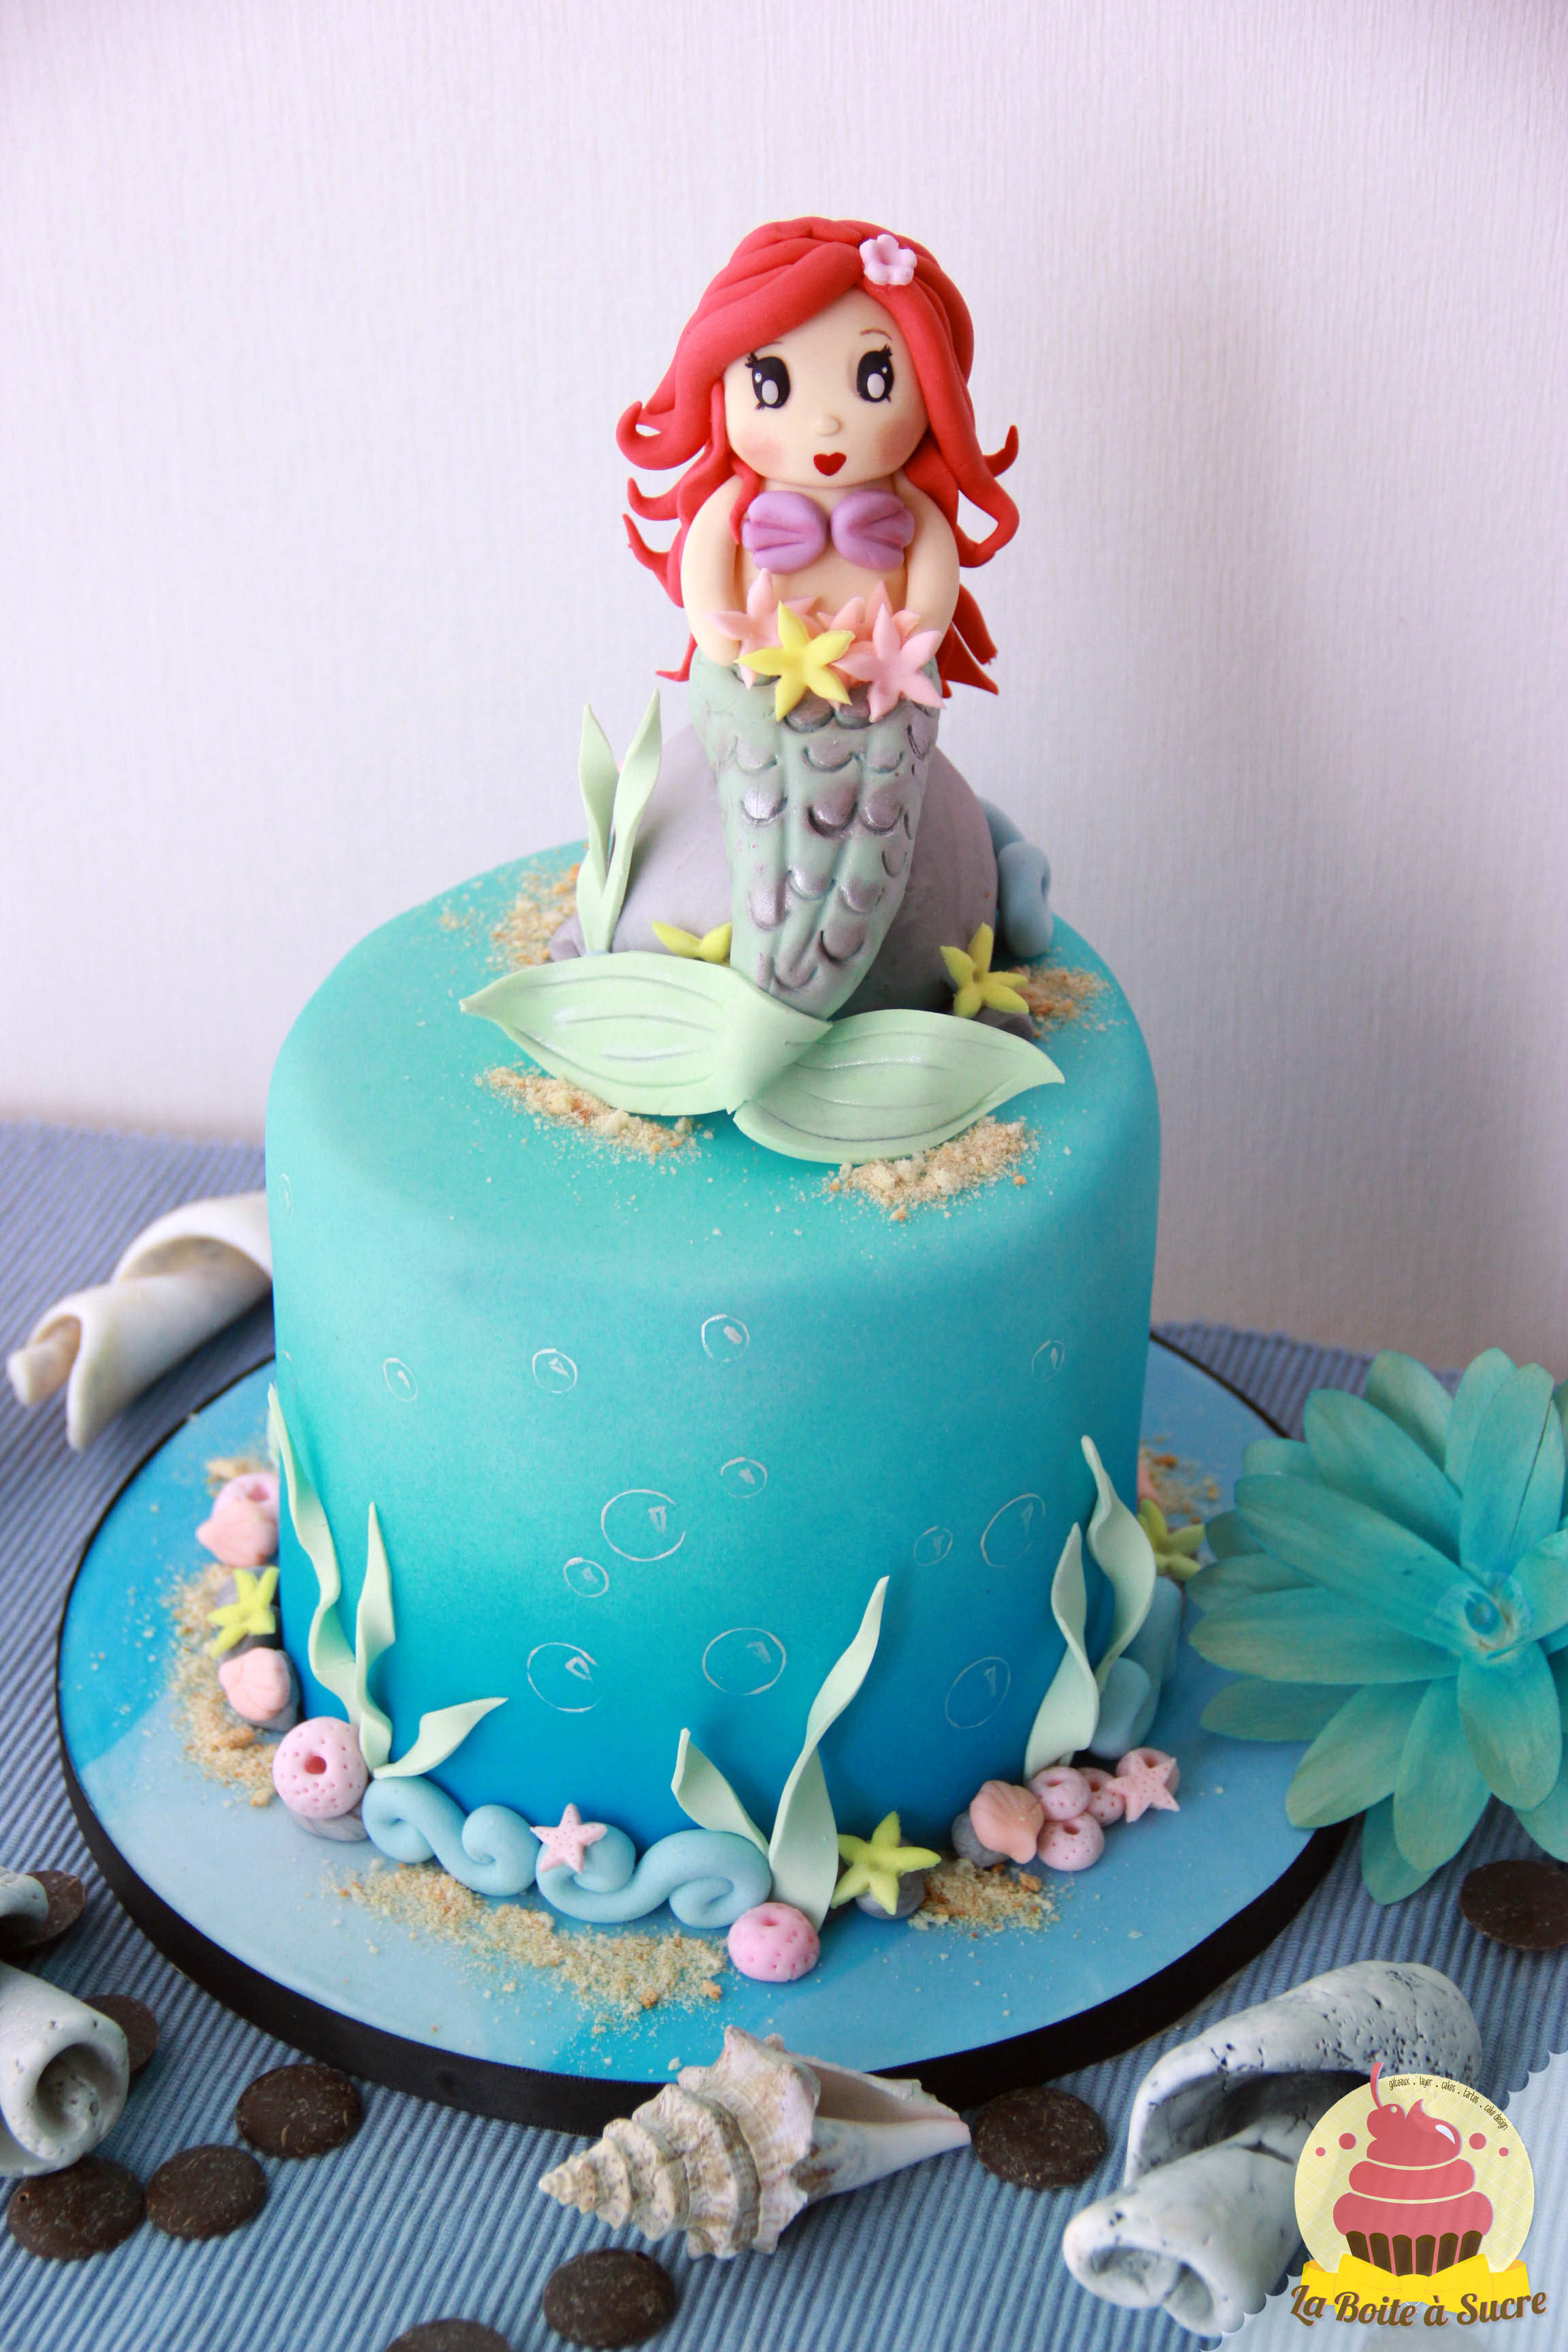 Little Mermaid themed birthday cake